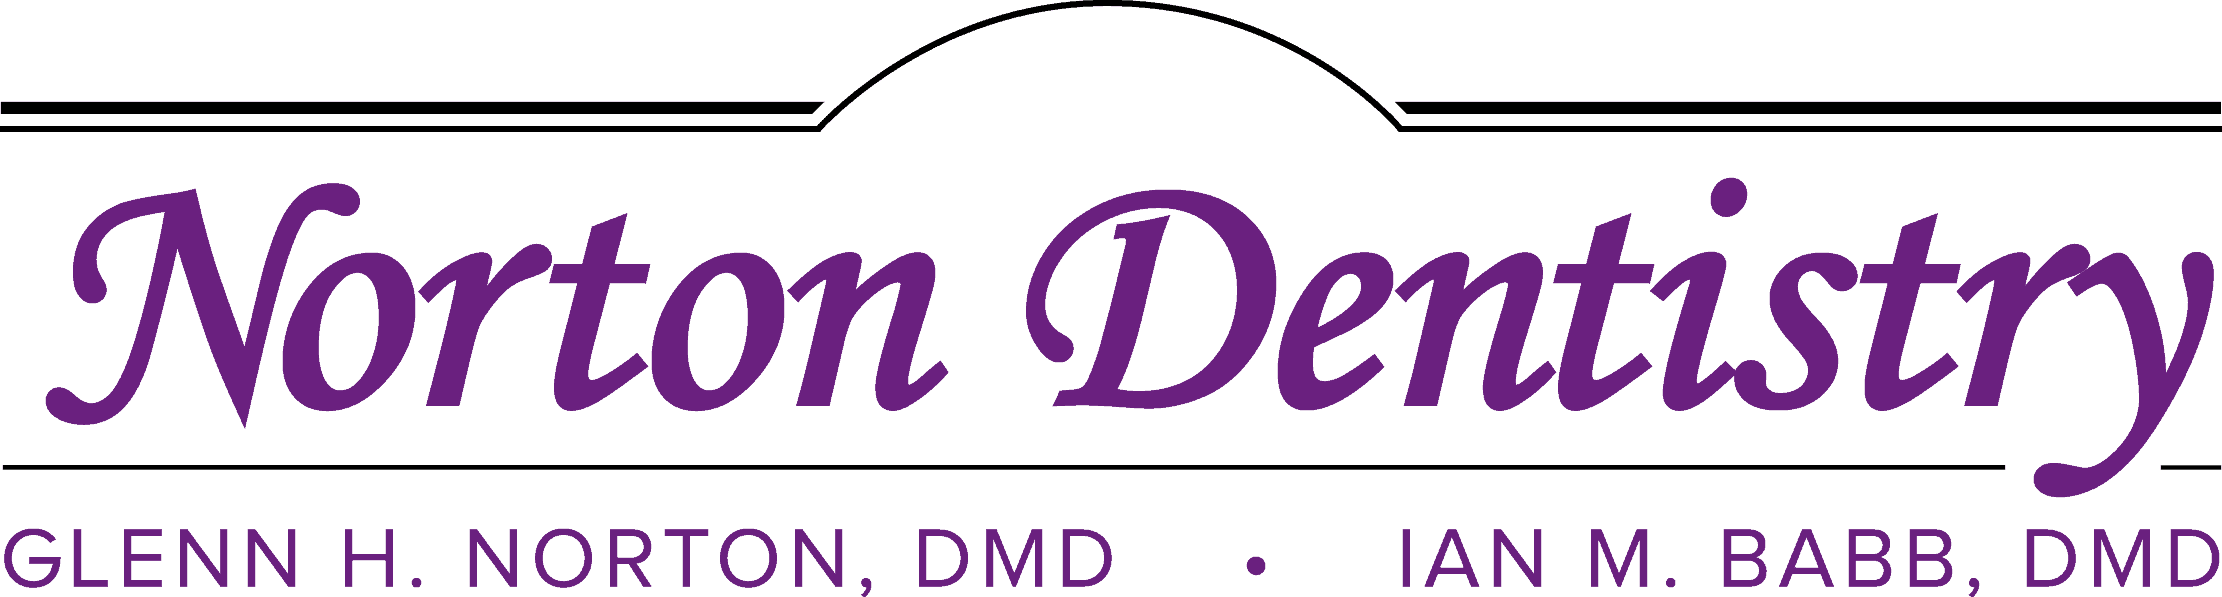 Glenn H. Norton, DMD | Excellence in Dentistry